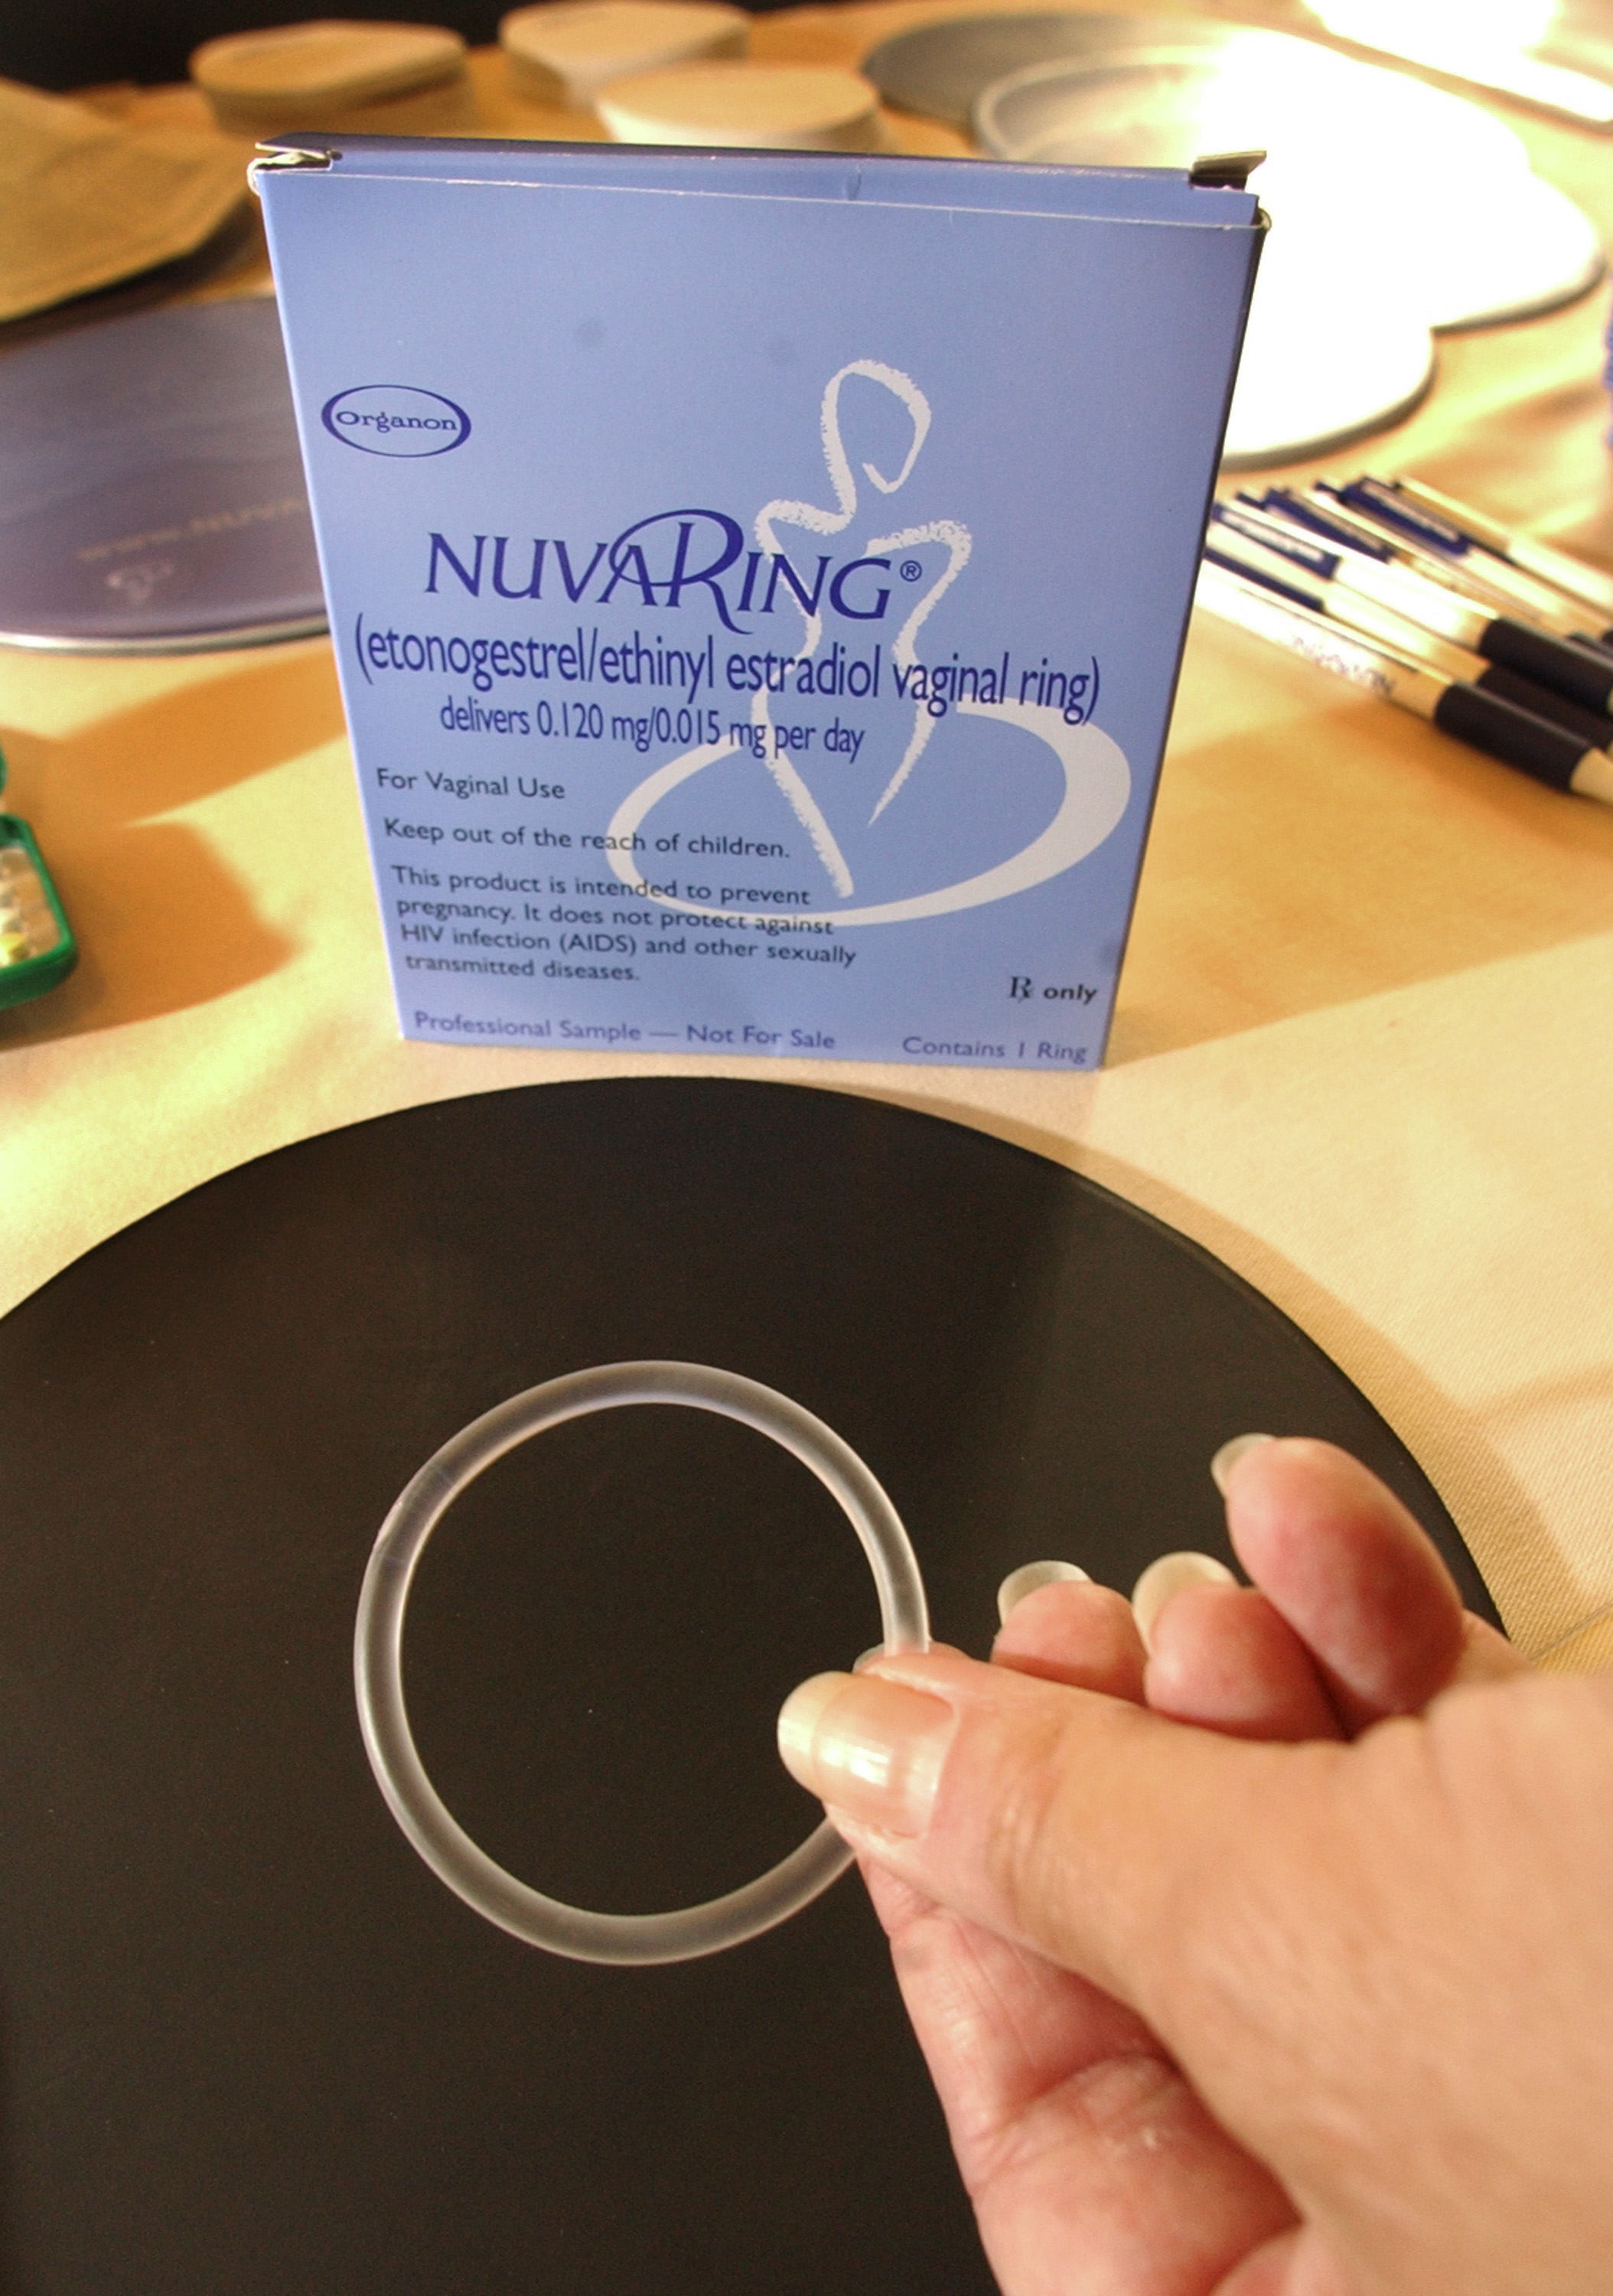 Organon representetive Sandy Wingfield shows-off a NuvaRing contraceptive September 12, 2003 at the Association of Reproductive Health Professional convention in La Jolla, California